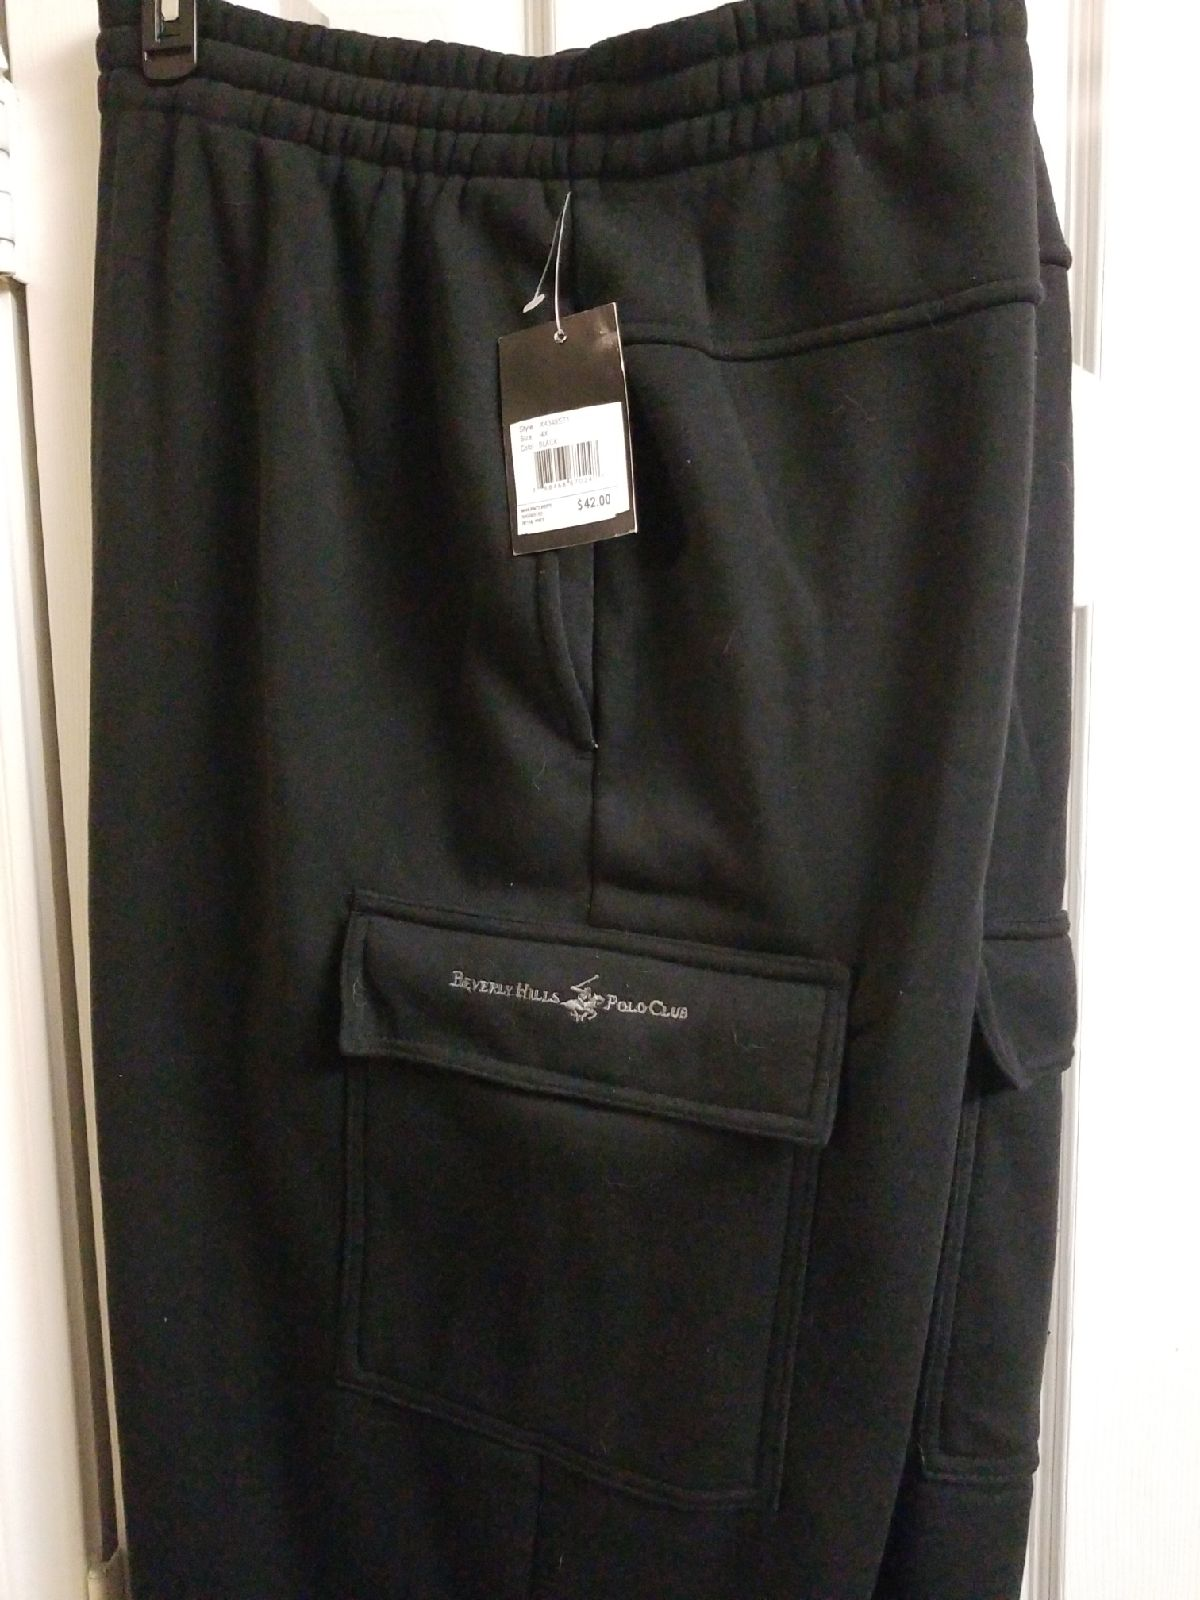 Beverly hills polo club cargo sweatpants